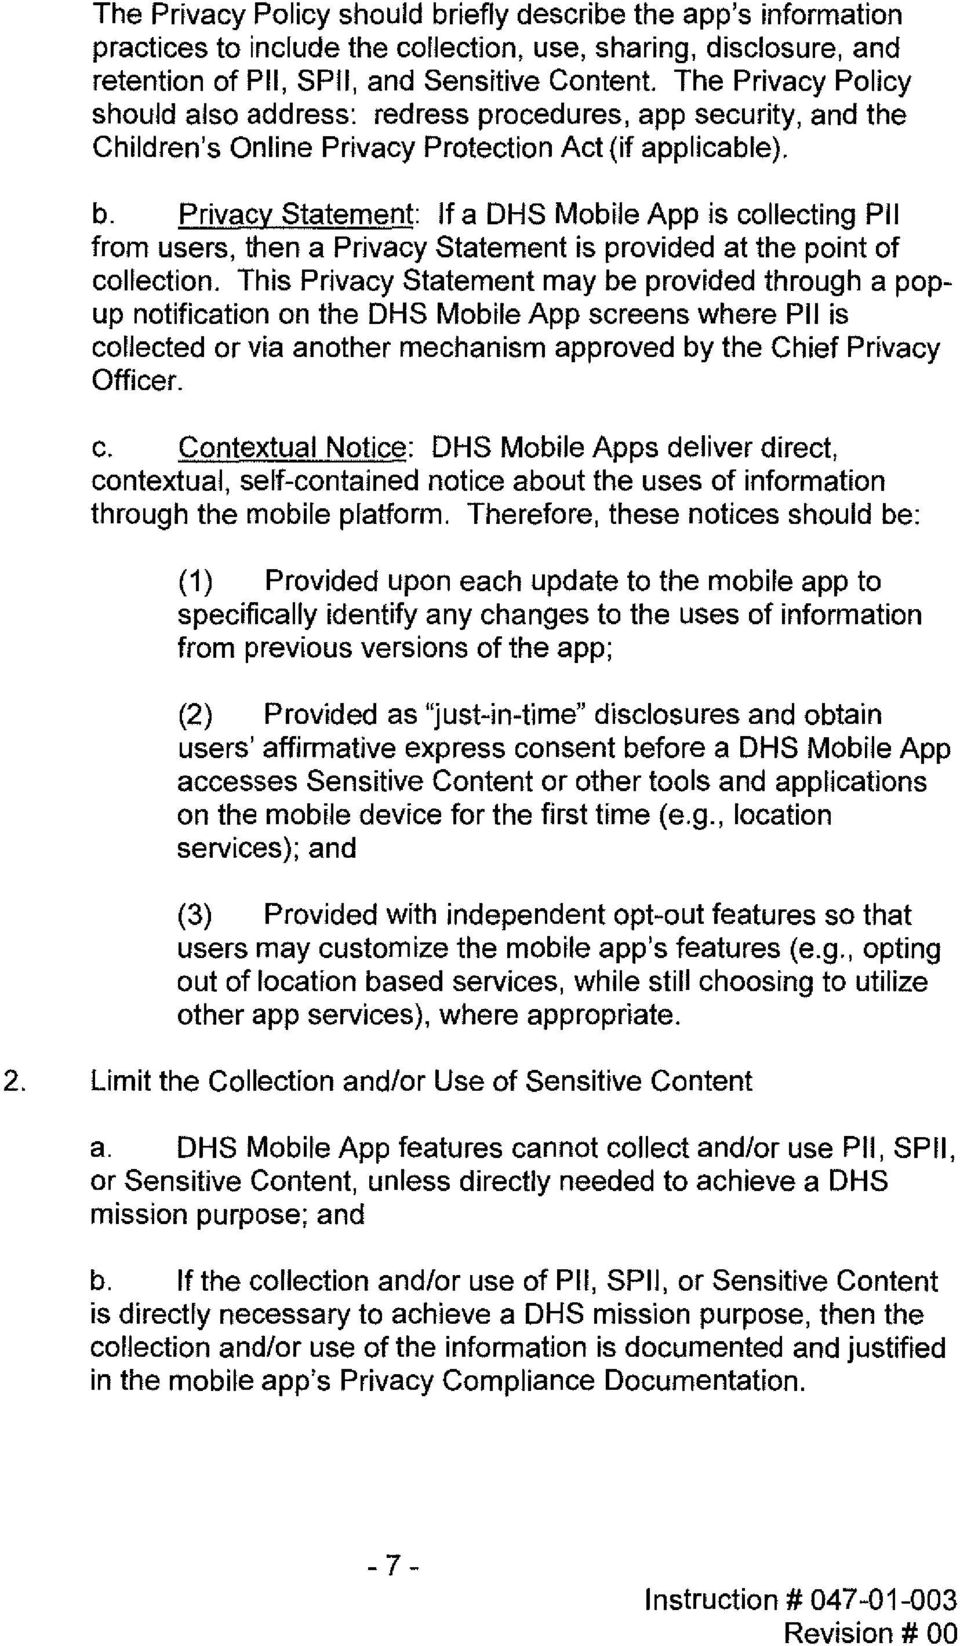 Privacy Statement: If a DHS Mobile App is collecting Pll from users, then a Privacy Statement is provided at the point of collection.